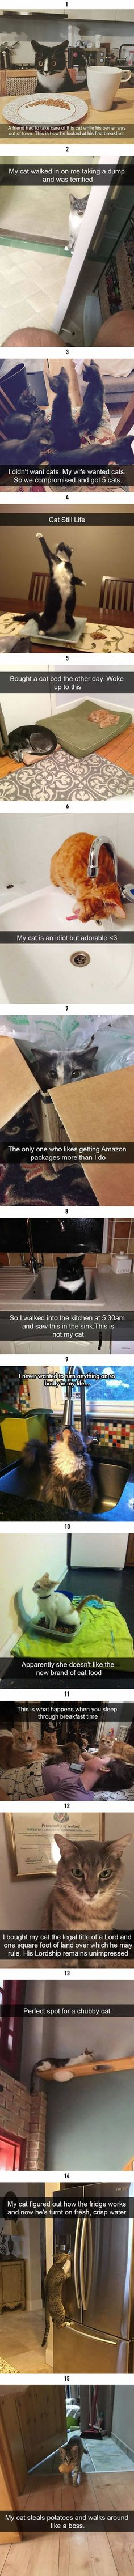 Trendy ideas for funny pets humor sad Funny Animal Memes, Cute Funny Animals, Funny Animal Pictures, Funny Cute, Cute Cats, Super Funny, Hilarious, Funny Images, Funny Photos